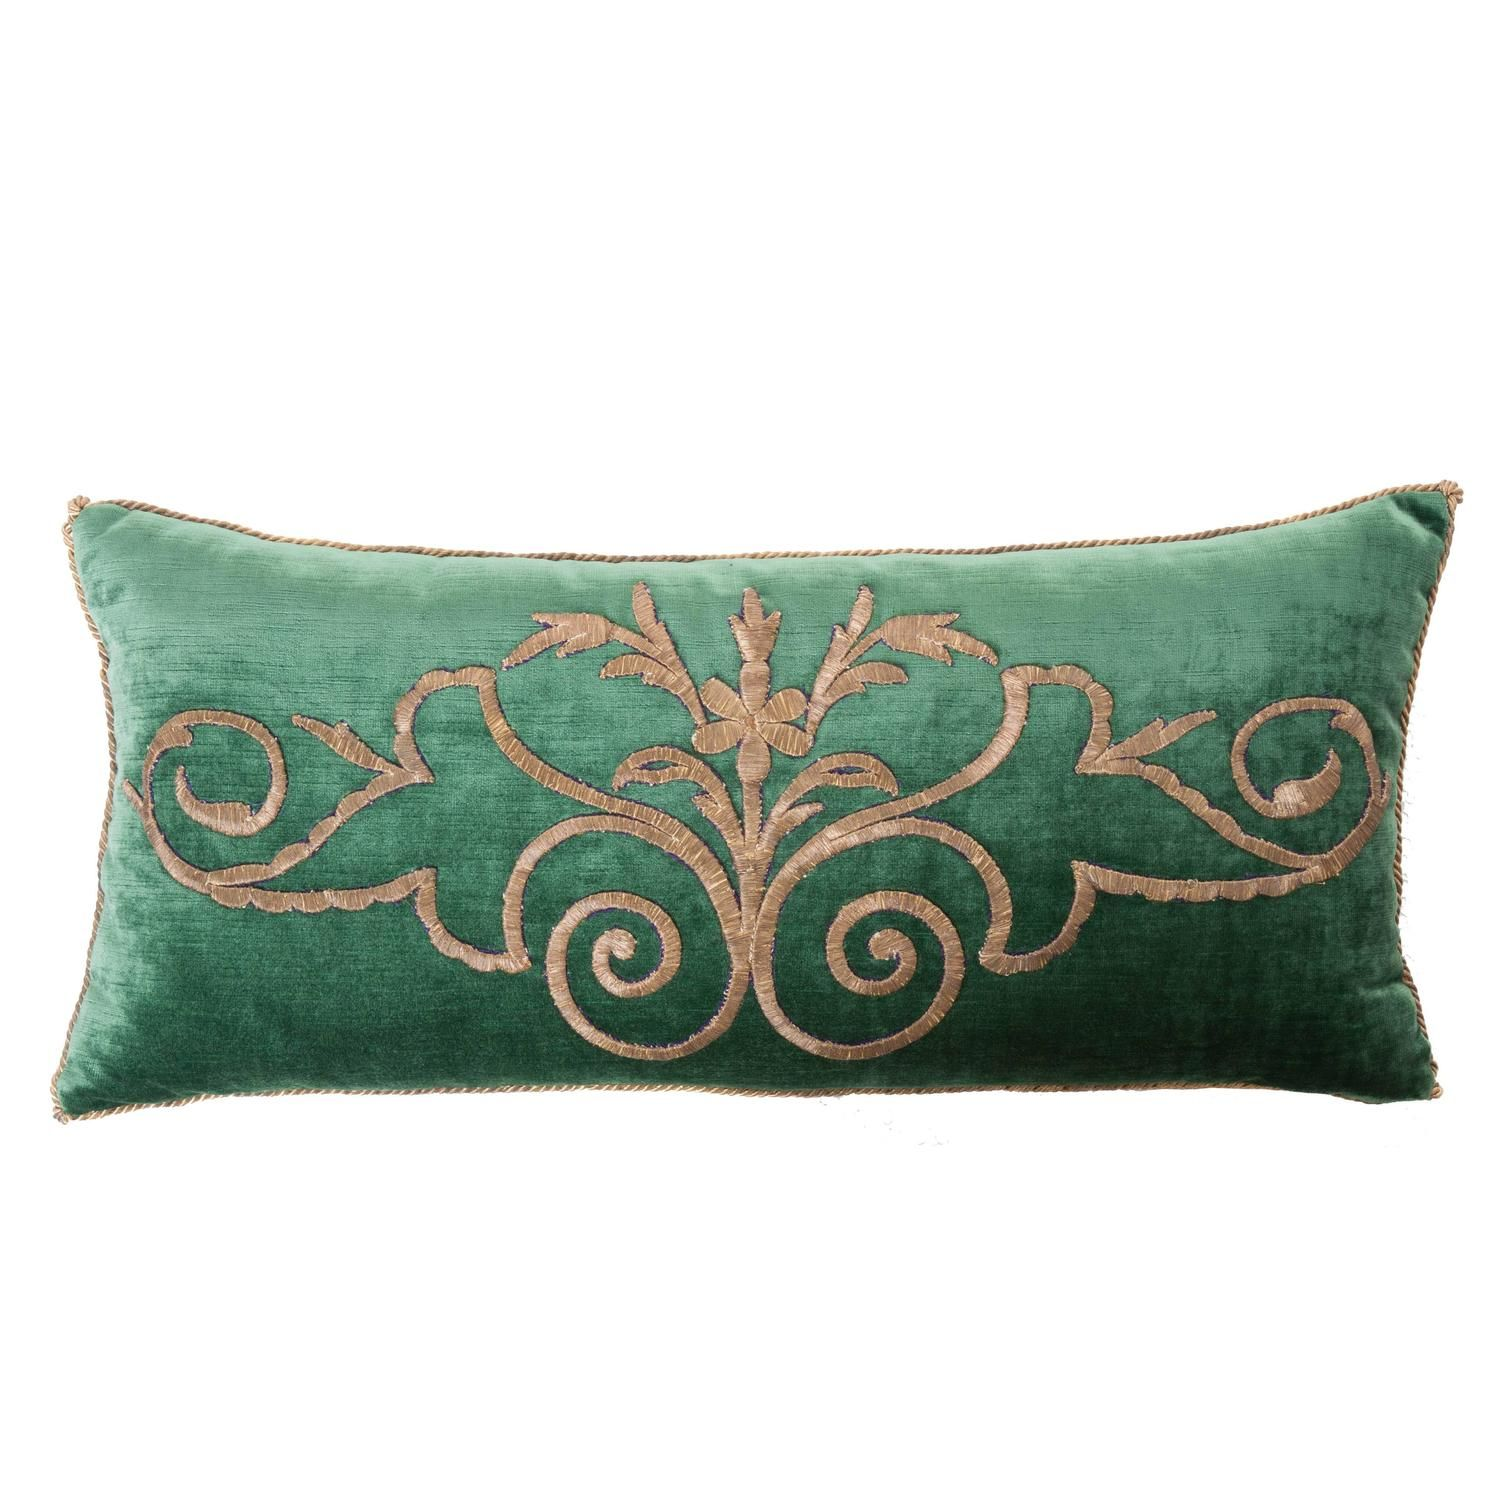 b0a3c18bc1efc Antique Ottoman Empire raised gold metallic dival embroidery on dark jade  velvet. Pillow is hand trimmed with vintage gold metallic cording knotted  in the ...